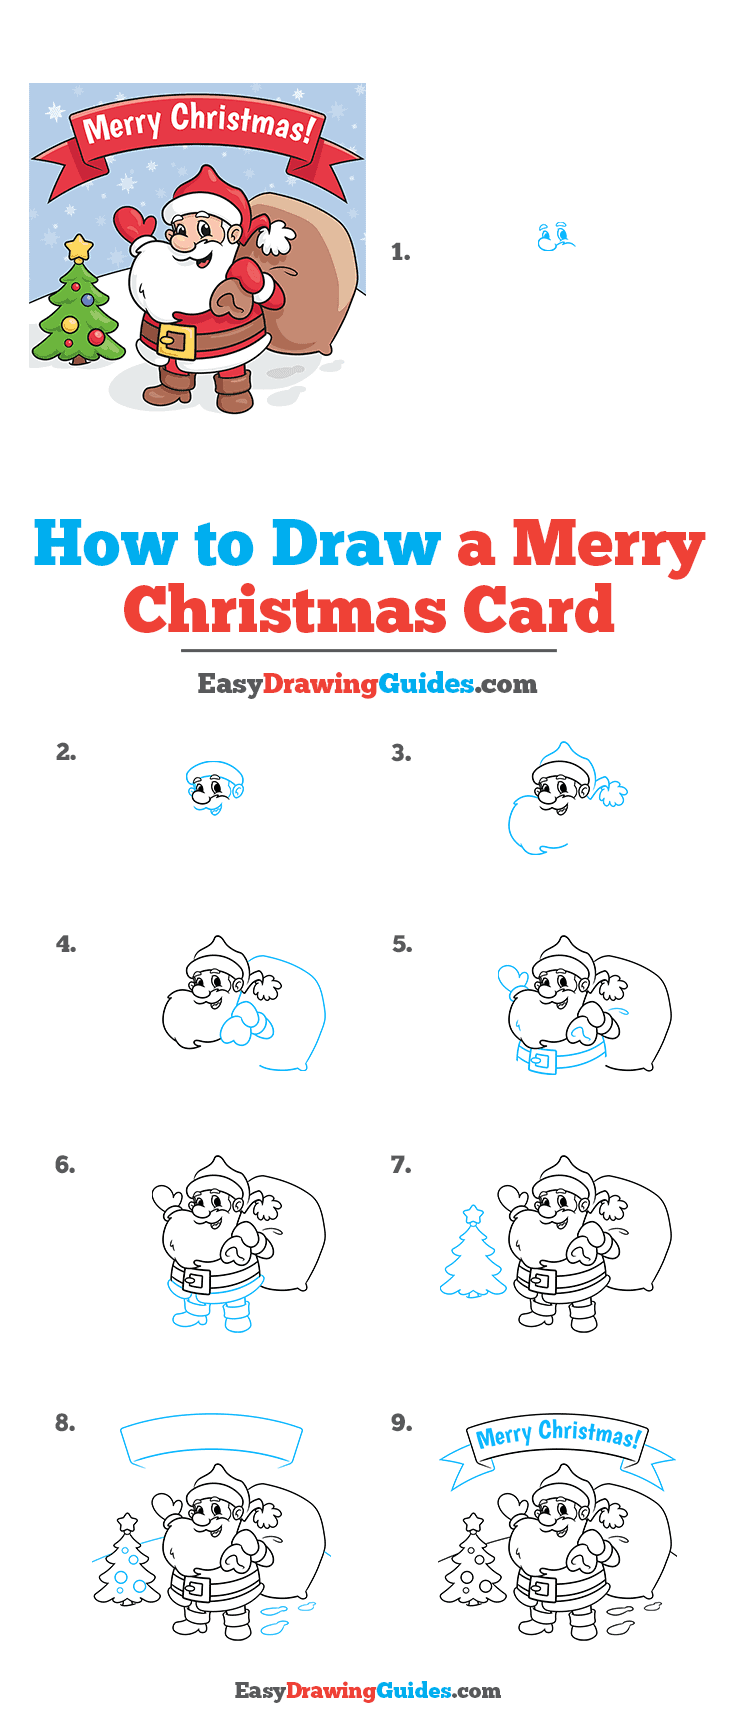 How to Draw a Merry Christmas Card Step by Step Tutorial Image